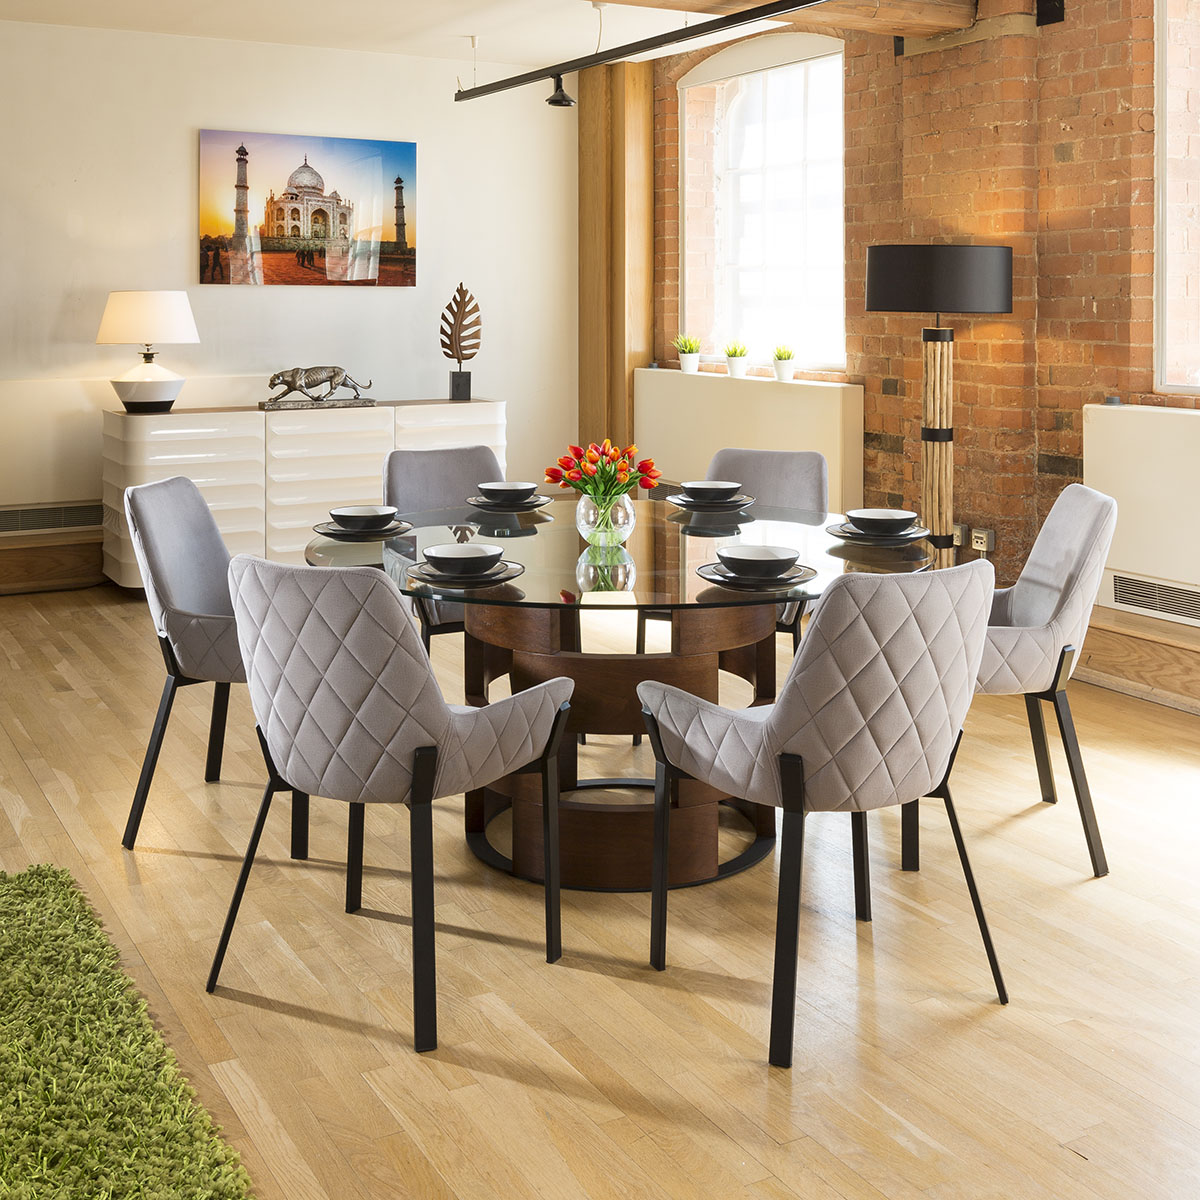 Huge Round Glass Top Walnut Dining Table Set 6 Light Grey Chairs